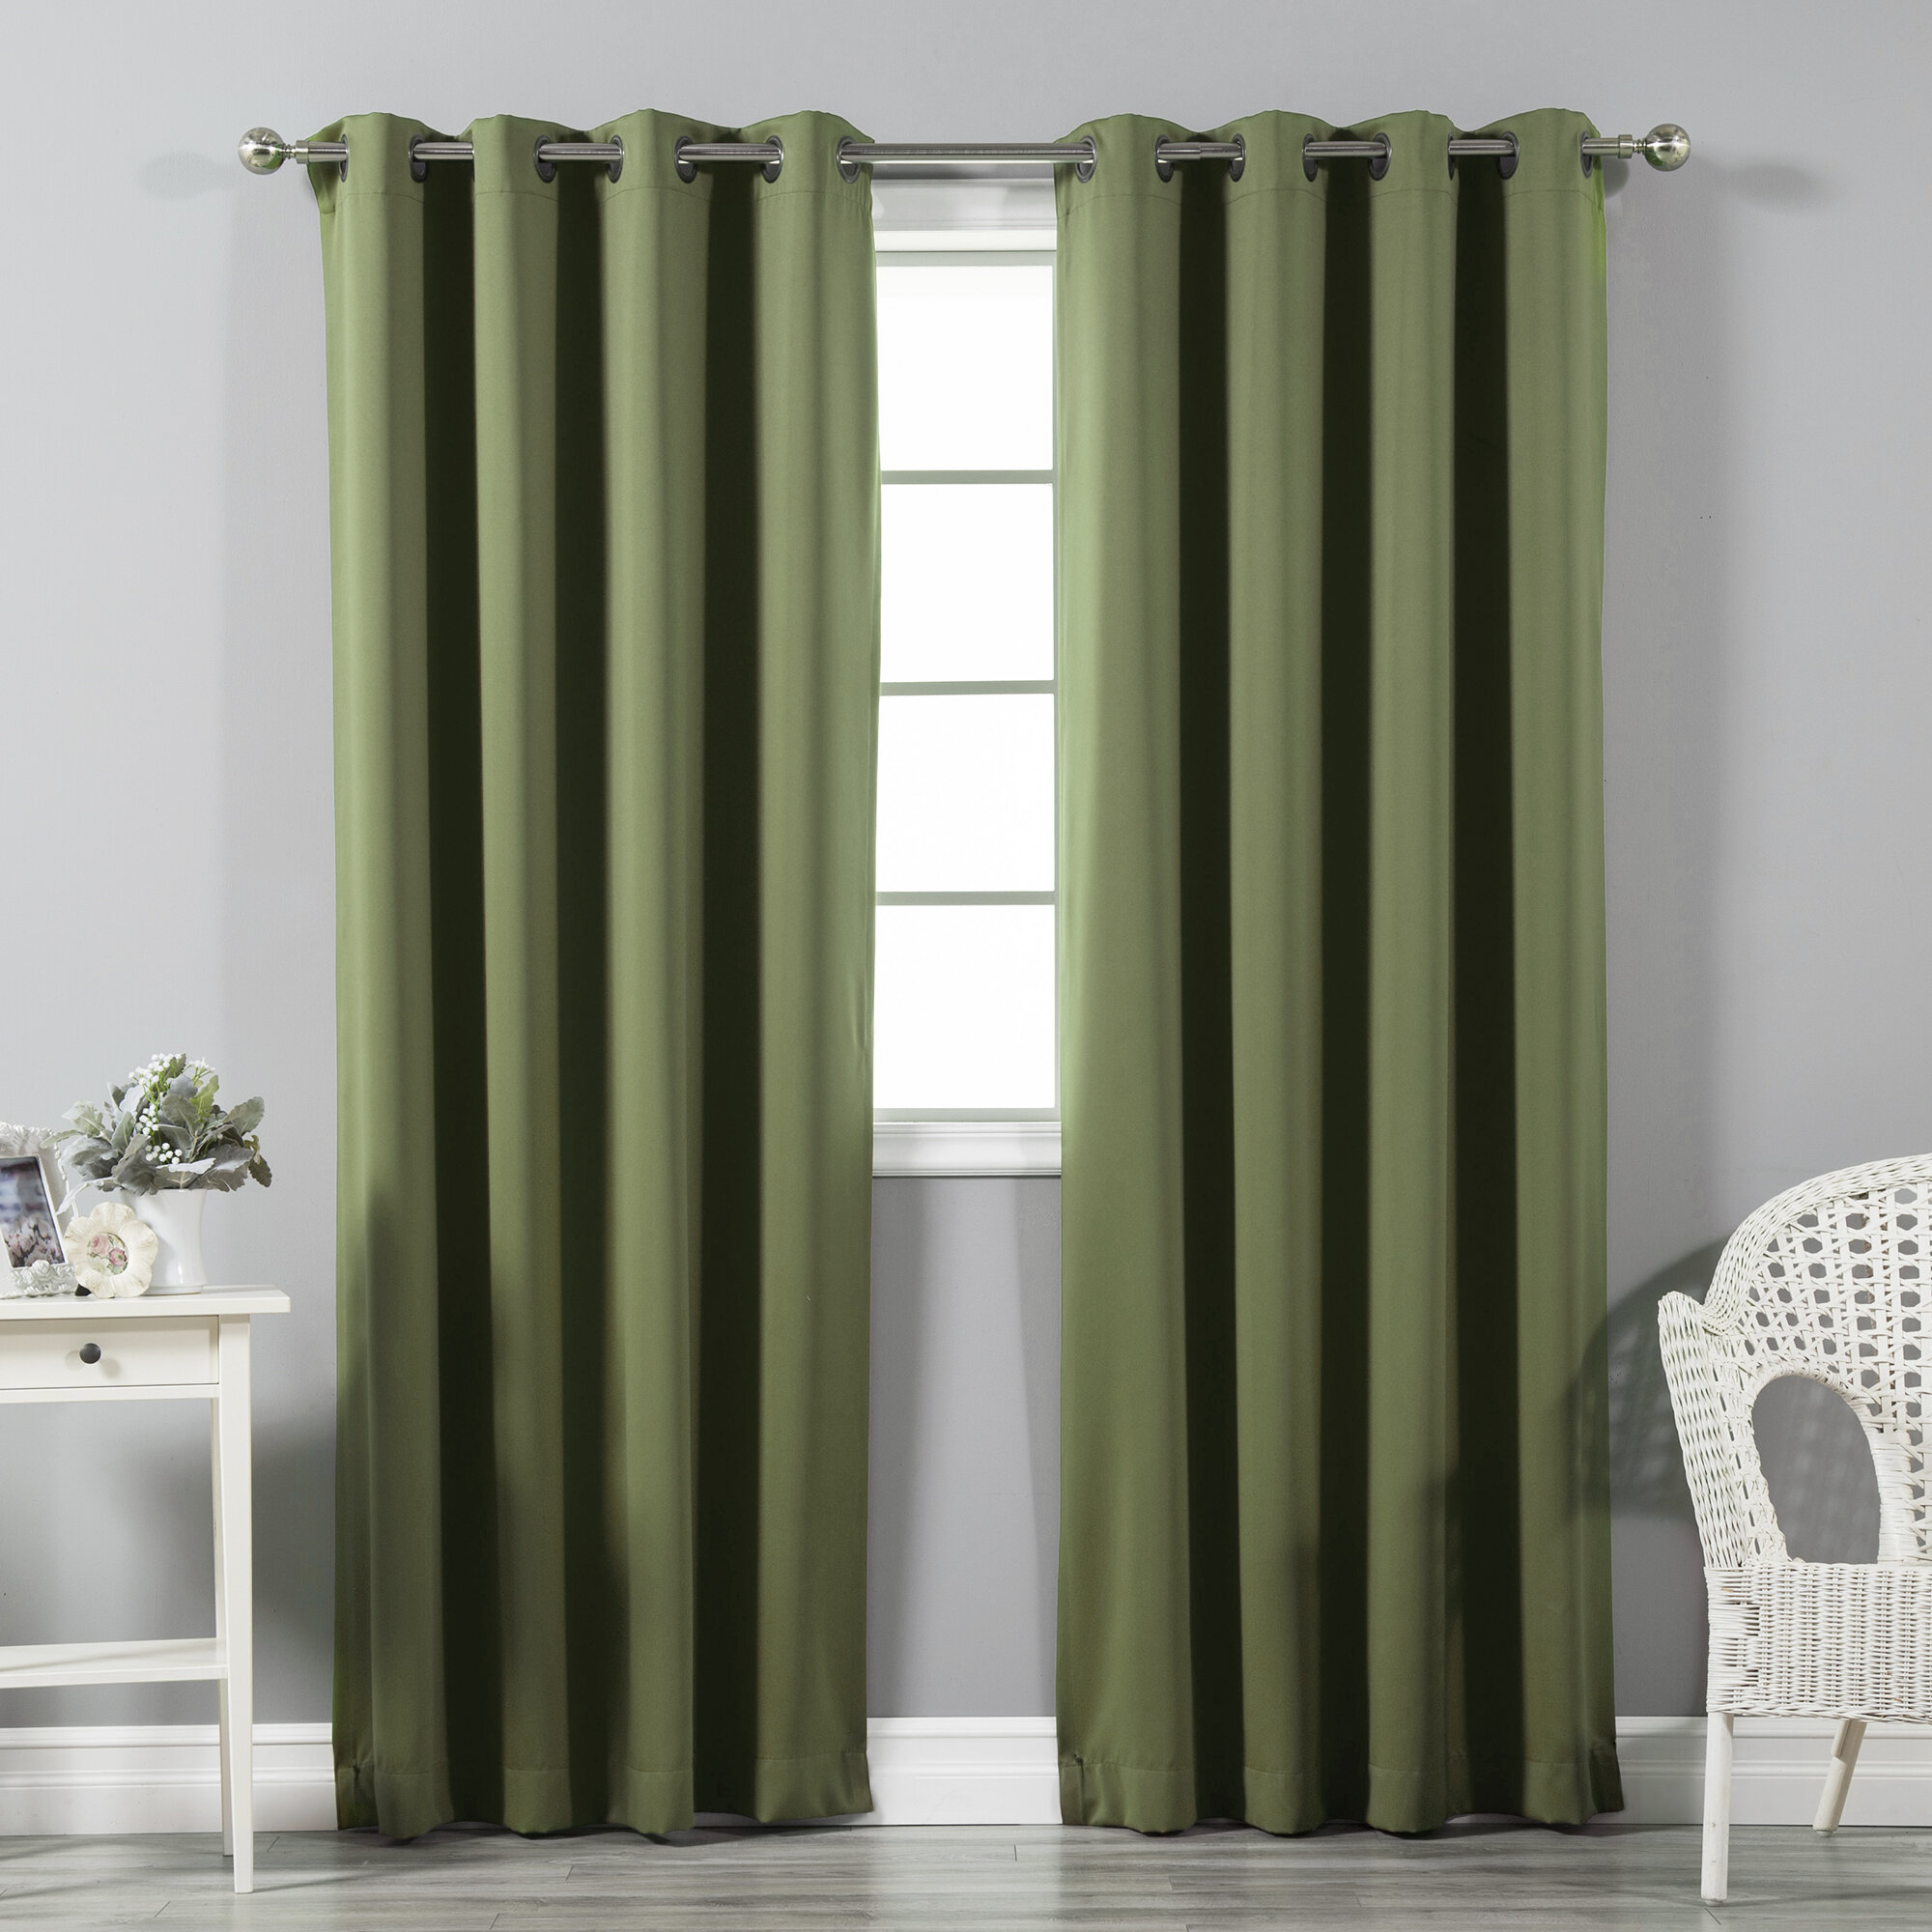 curtain threshold resistant target blackout amazon purple walmart light drapes curtains thevol cool insulated eclipse noise heat shower blocking article reduction with cu thermal tag hookless